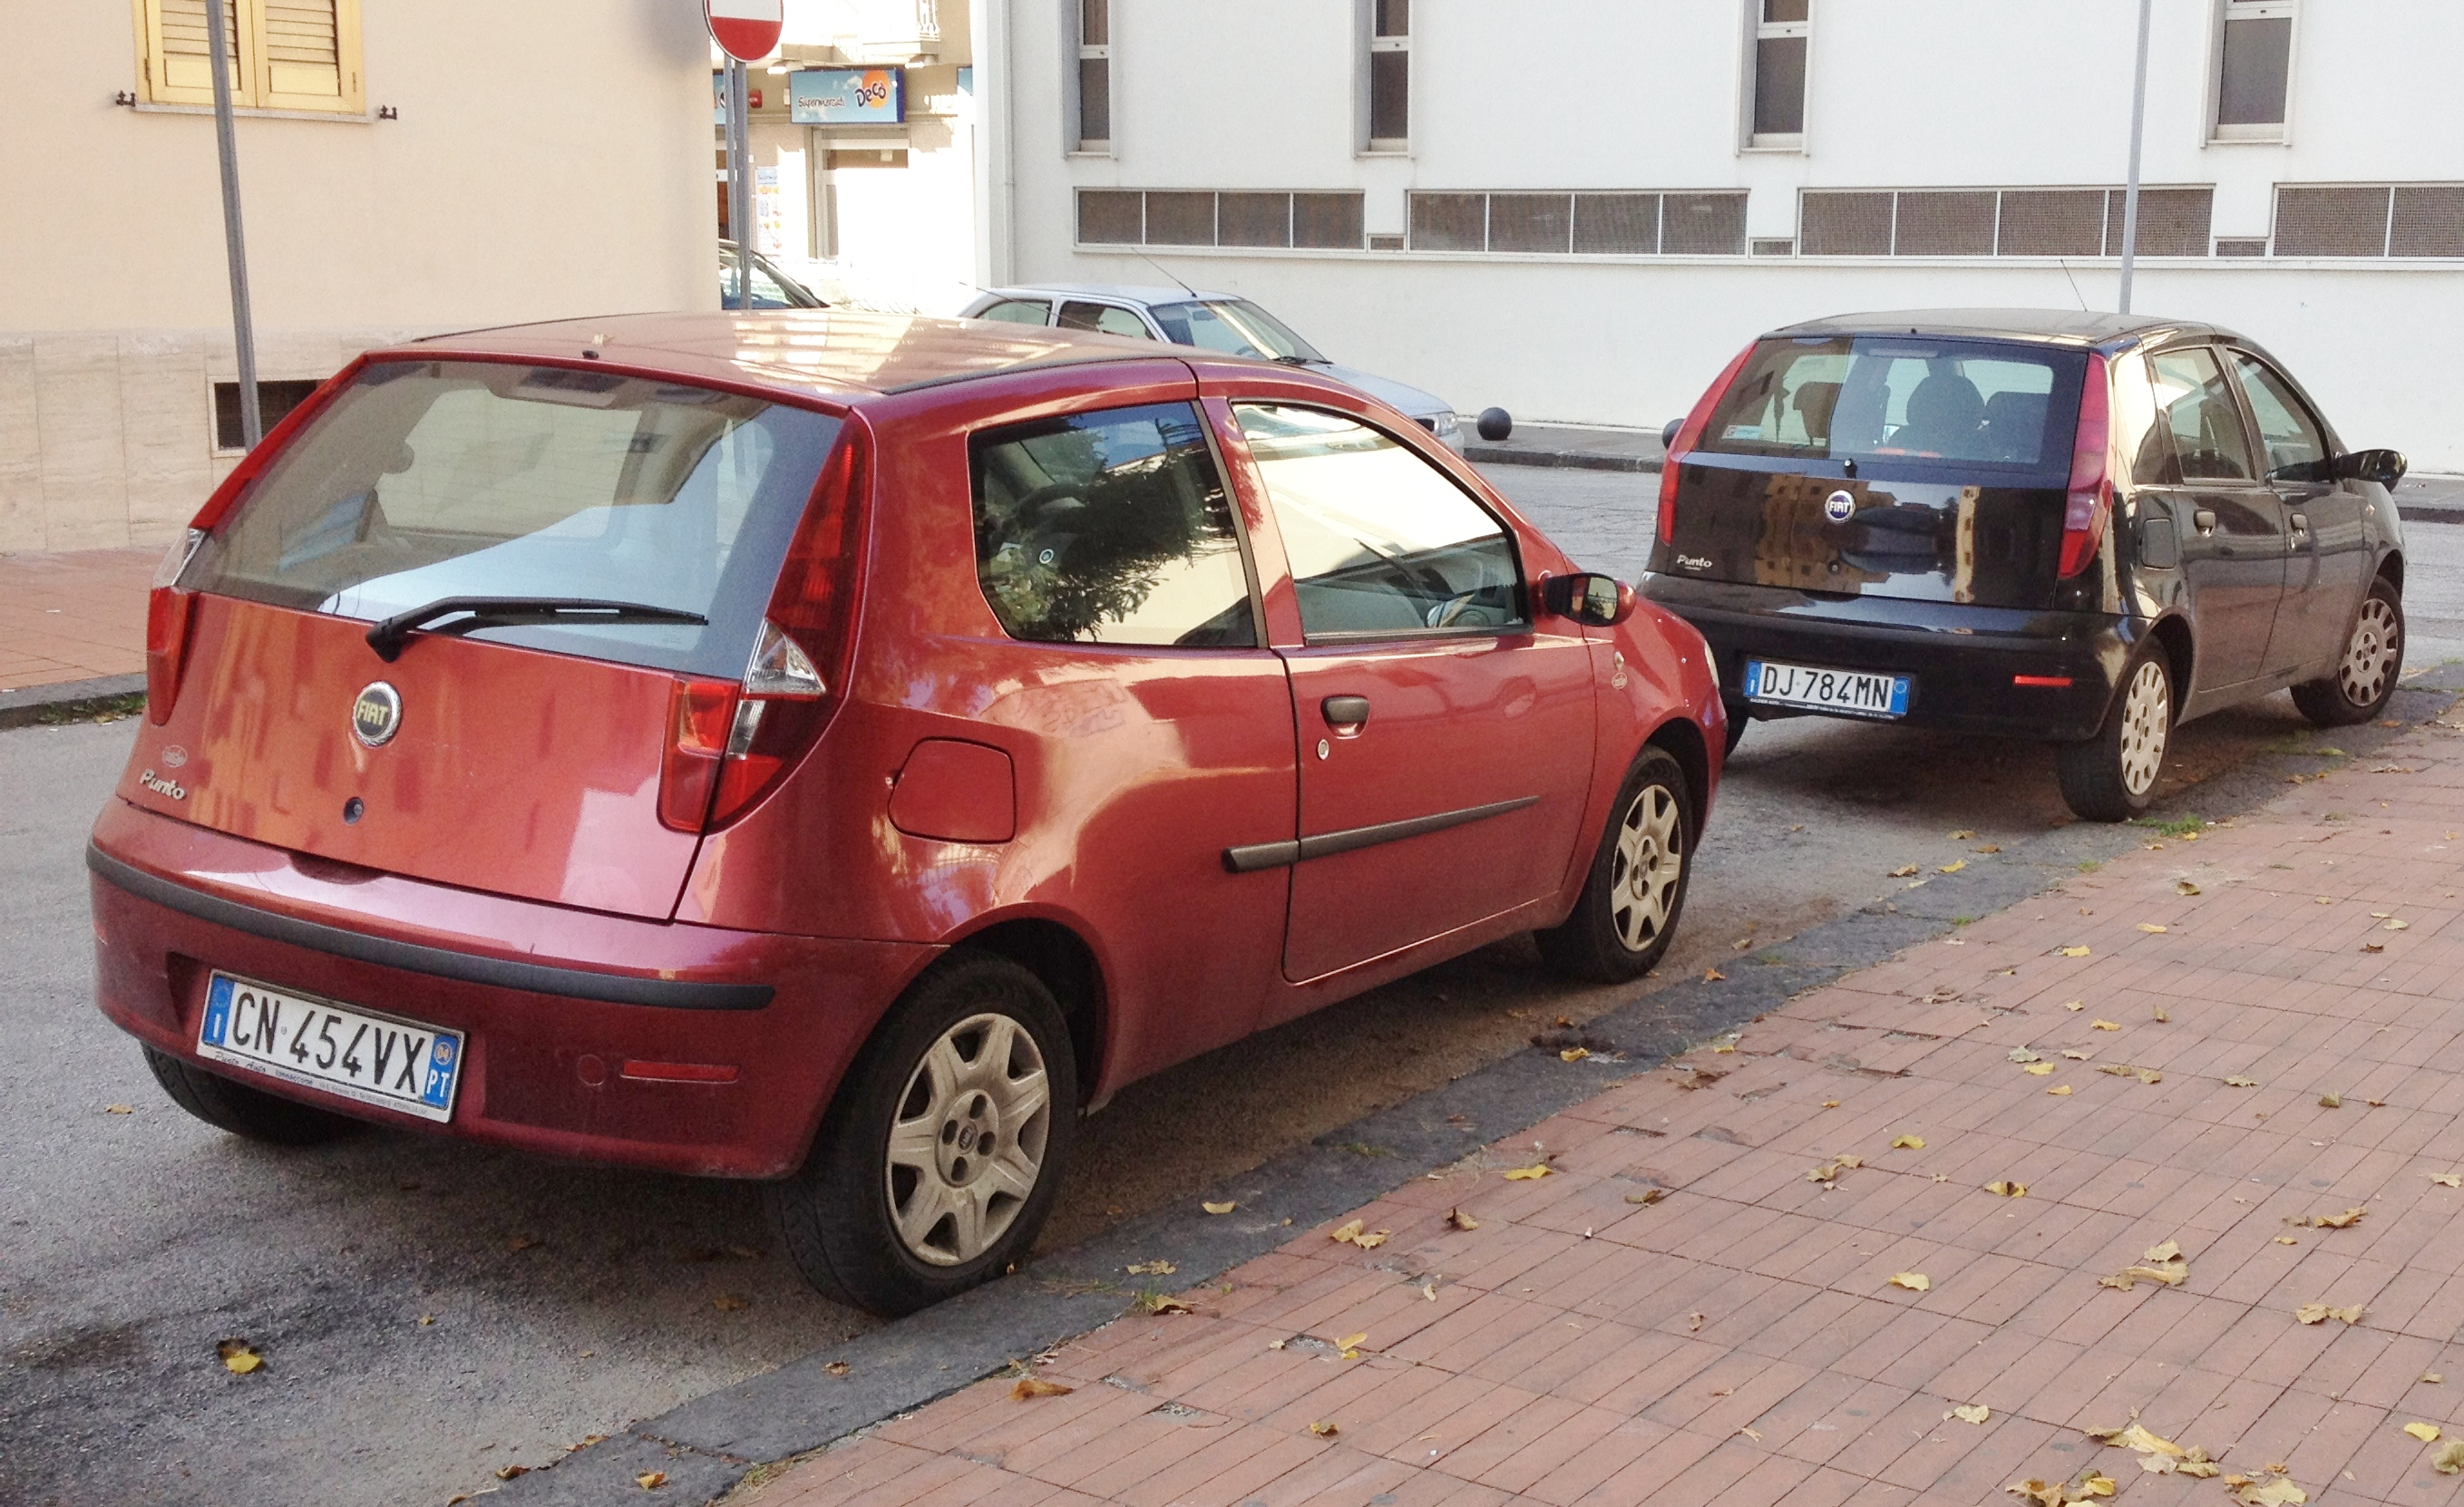 file fiat punto 188 facelift 3door 5door jpg wikimedia. Black Bedroom Furniture Sets. Home Design Ideas